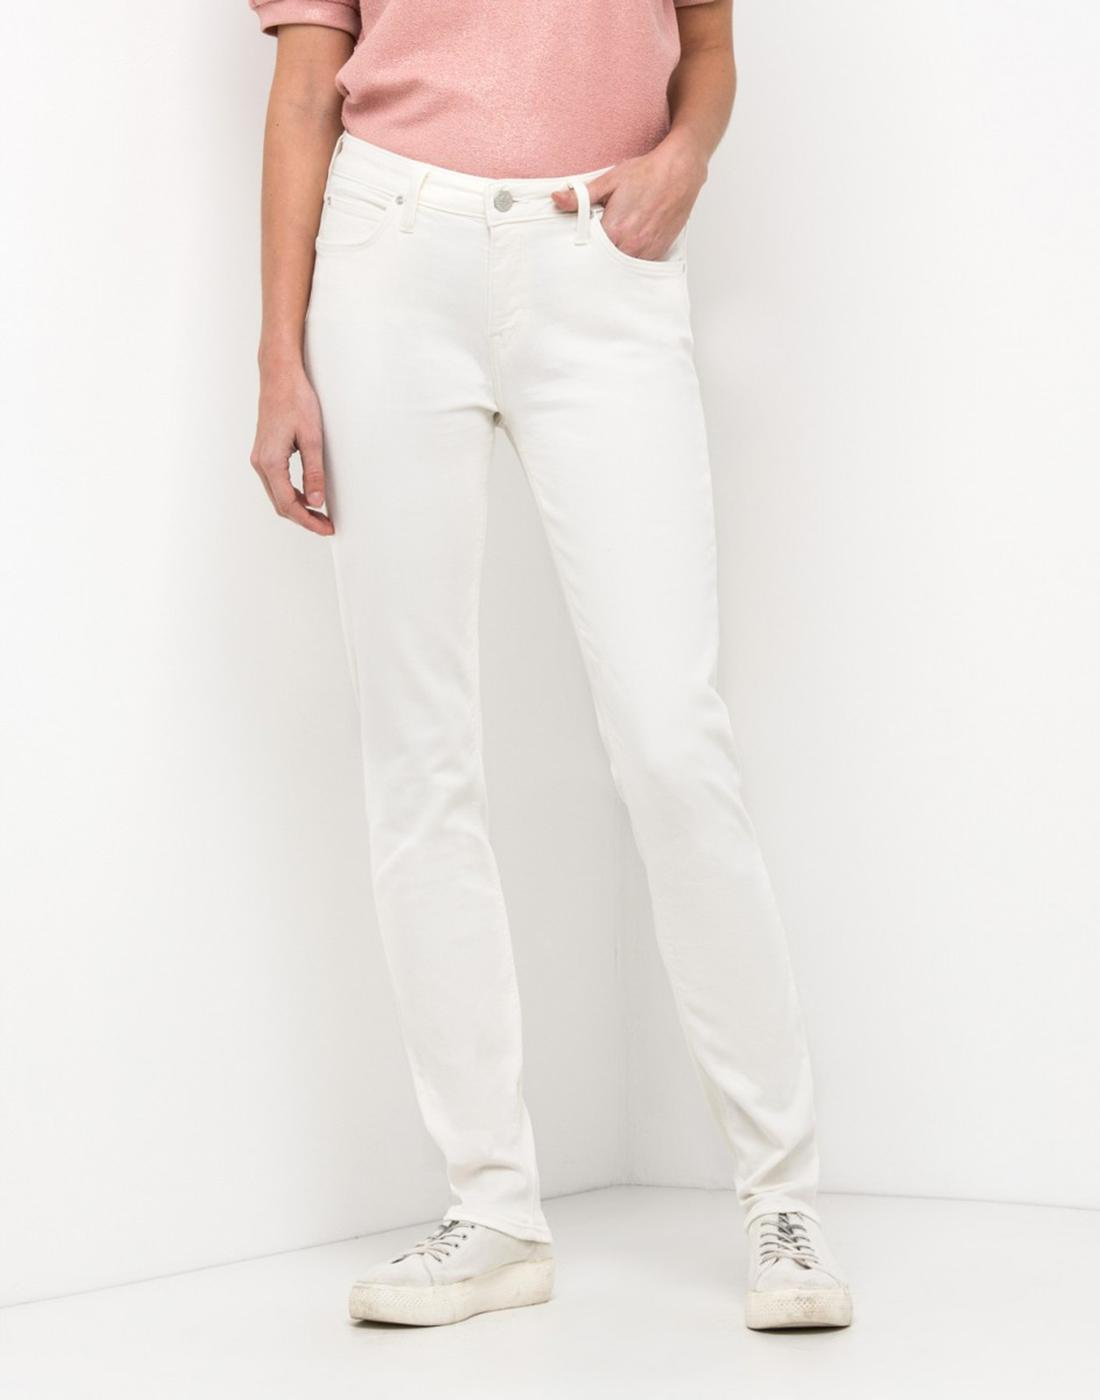 Elly LEE JEANS Womens Retro Mod Slim Jeans in Ecru